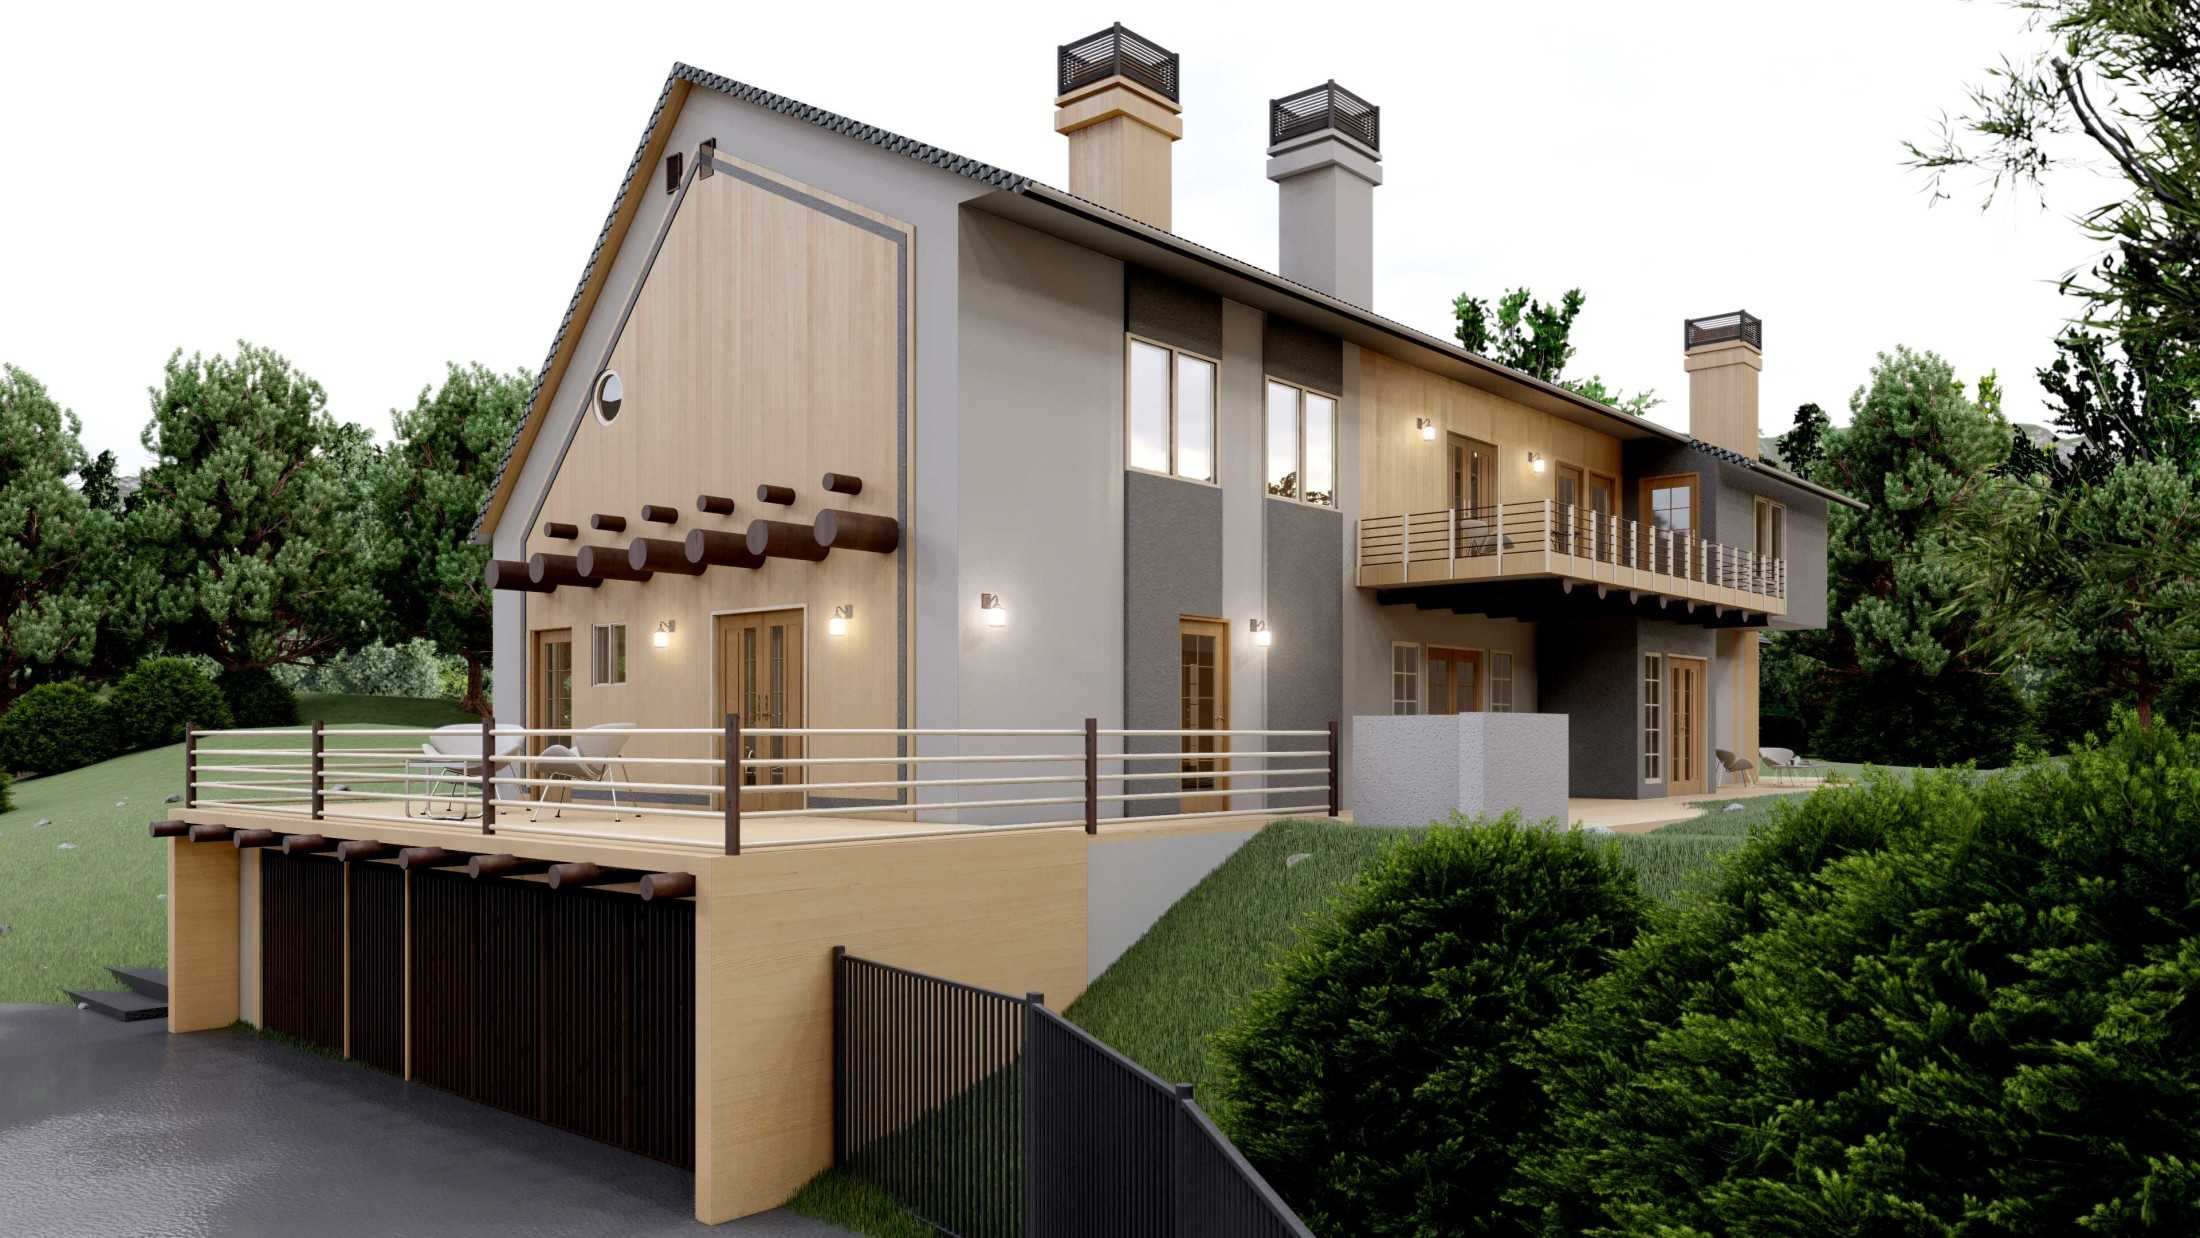 Whn Studio Exterior Update For Santa Fe Style Home In Southern California California, Amerika Serikat California, Amerika Serikat Achmad-Wahana-Karimullah-Exterior-Update-For-Santa-Fe-Style-Home-In-Southern-California Classic 87214